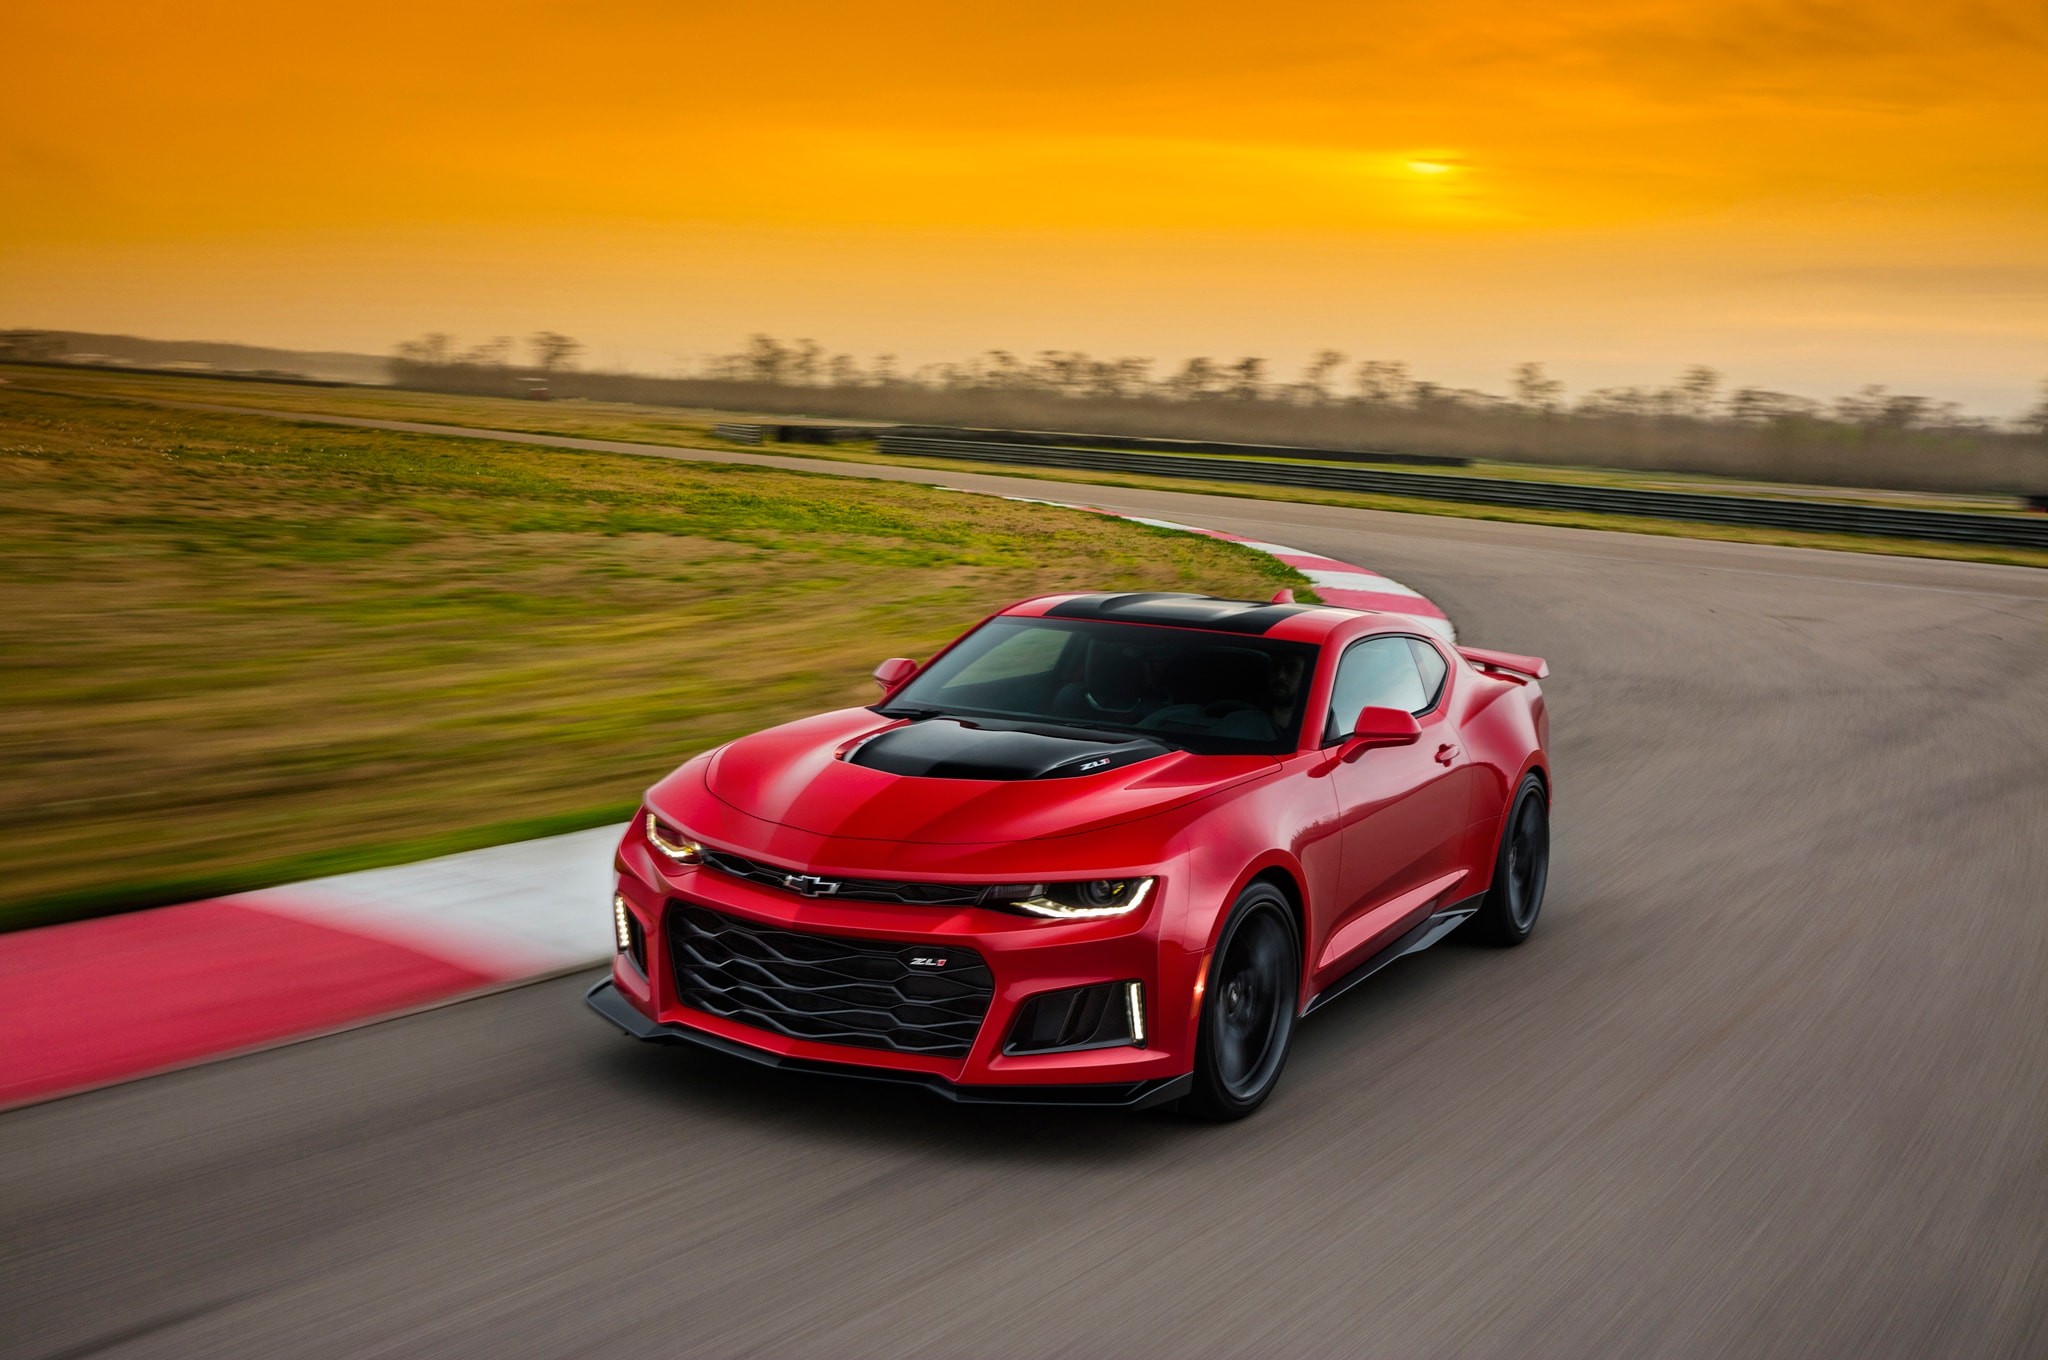 2017 Chevrolet Camaro ZL1 Wallpaper | HD Car Wallpapers